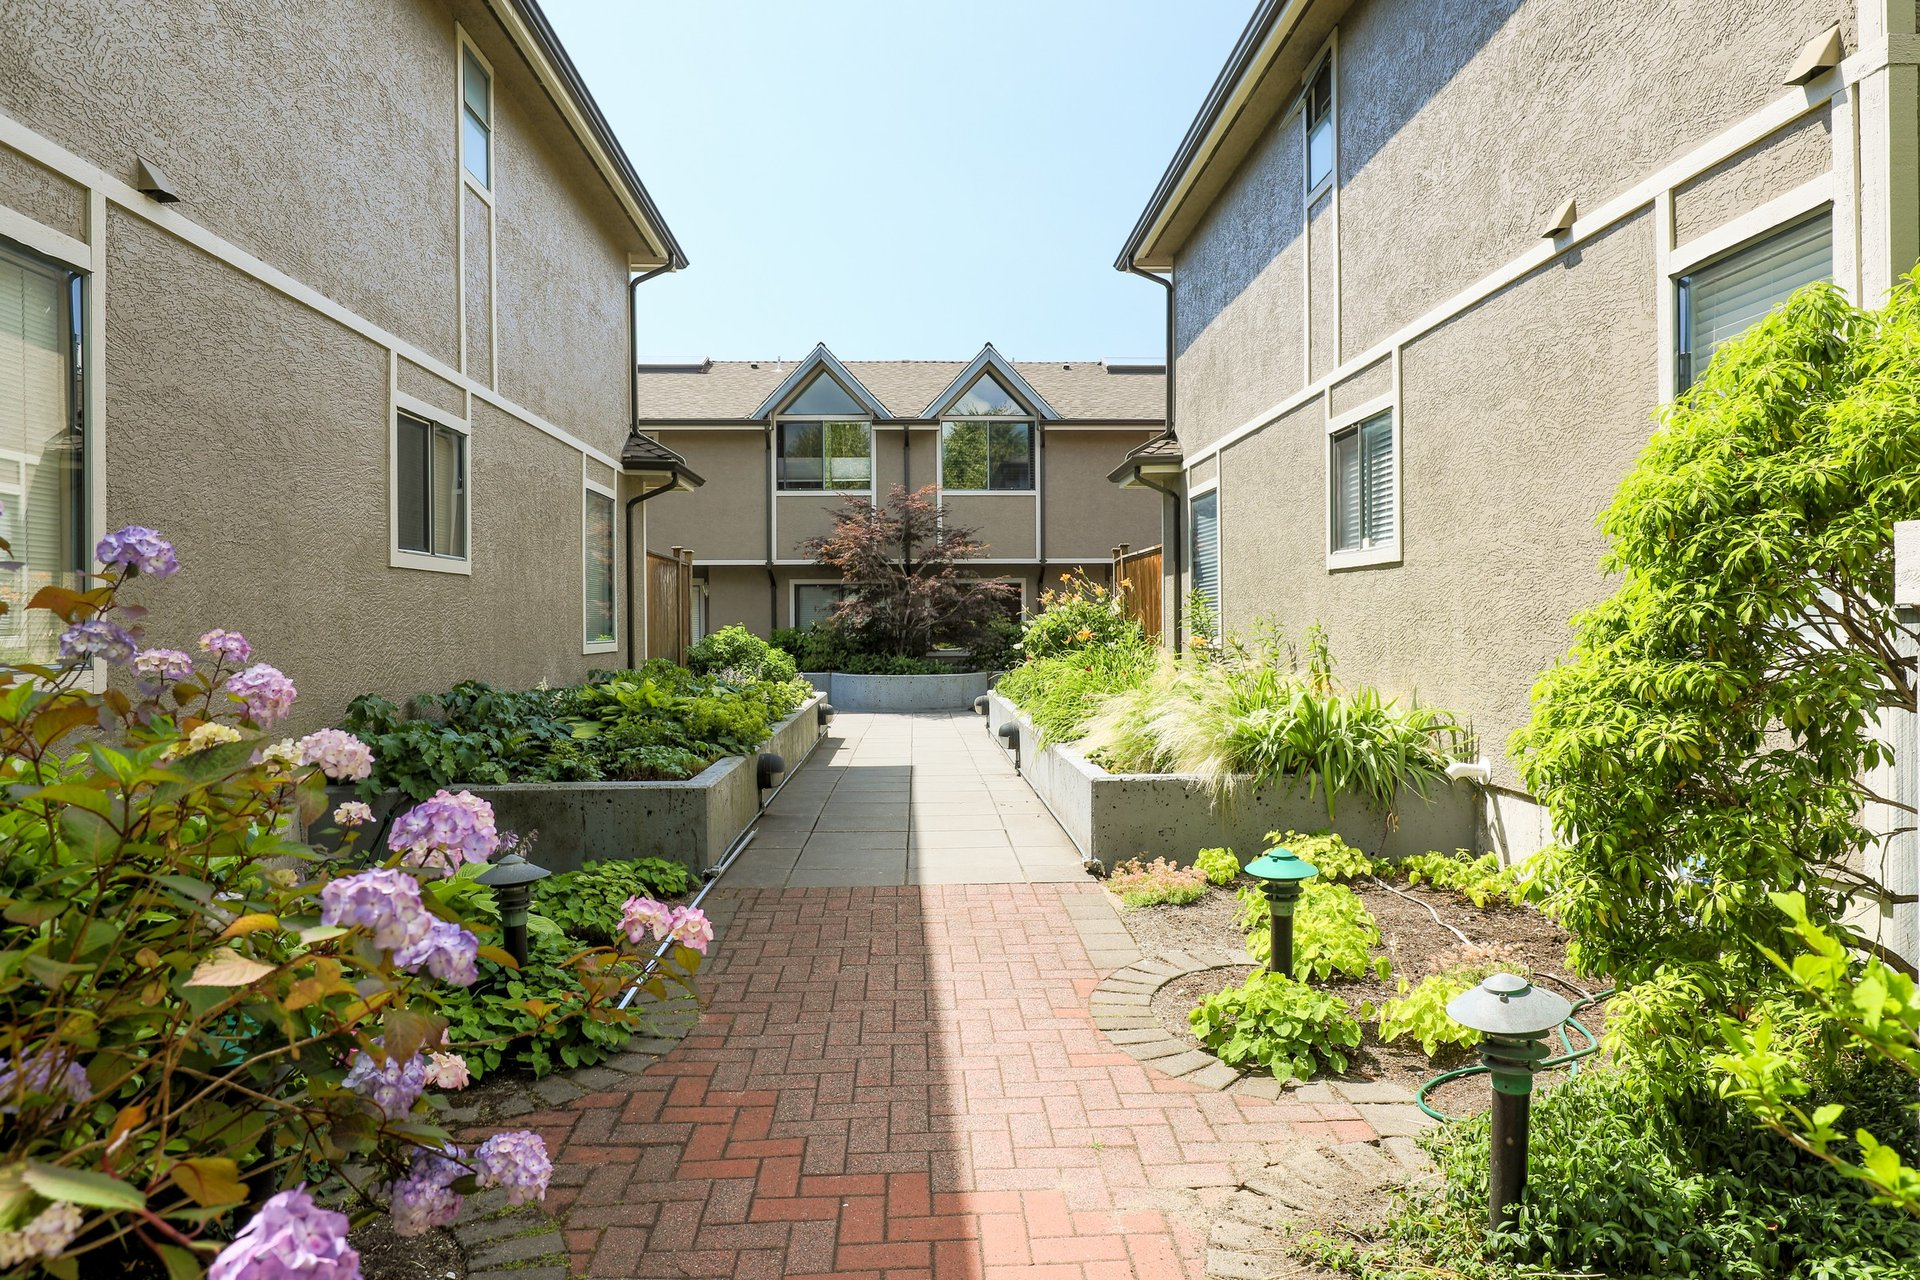 Georgian Court - 2133 St. Georges Street | Townhomes For Sale + Listing Alerts